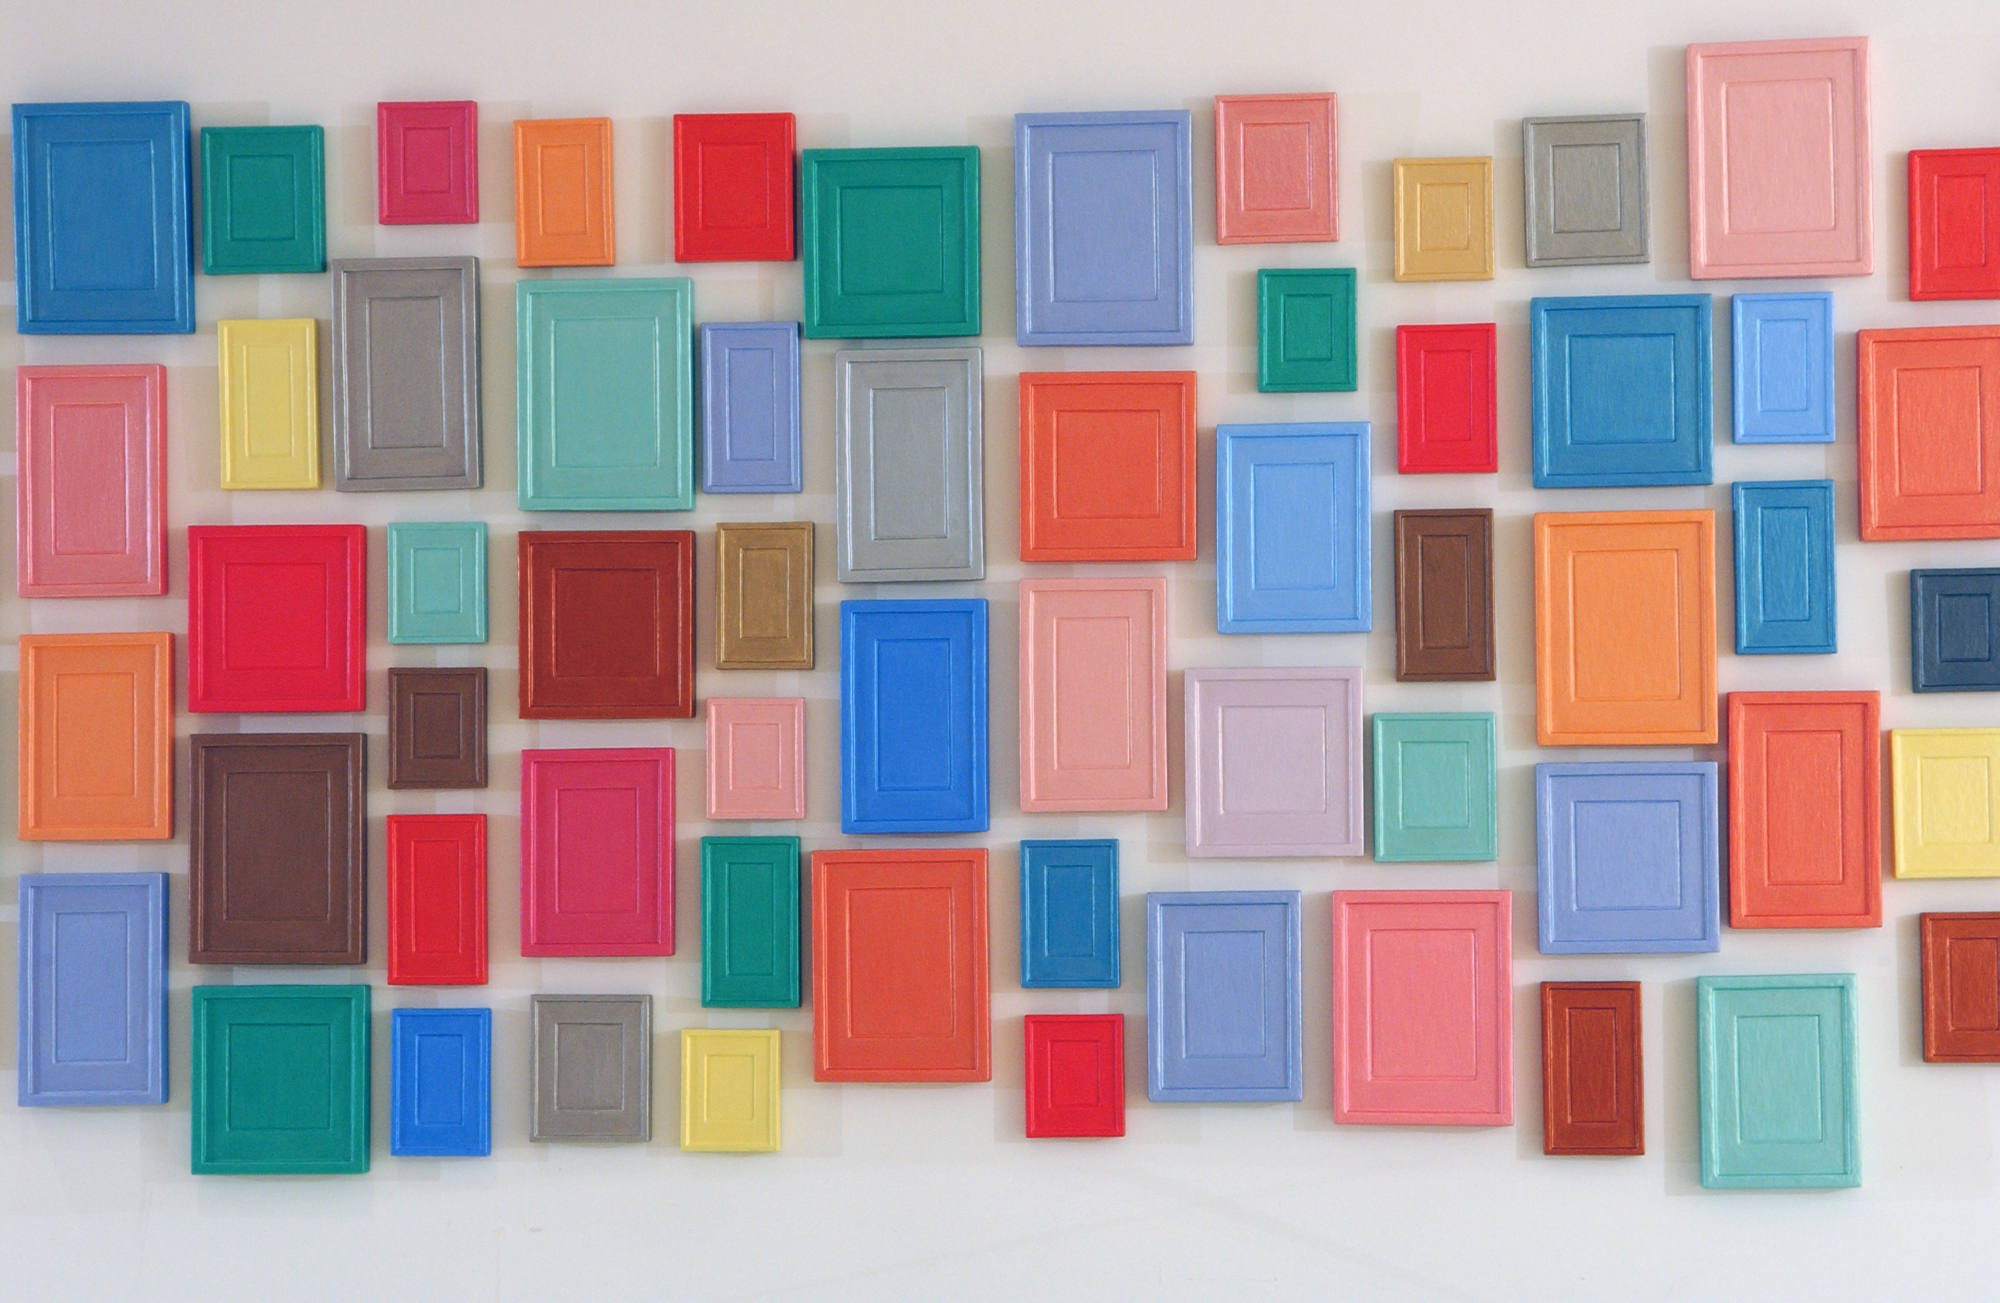 240 Plaster surrogates from Allan McCollum are 240 brightly colored, plaster emblems that represent paintings.